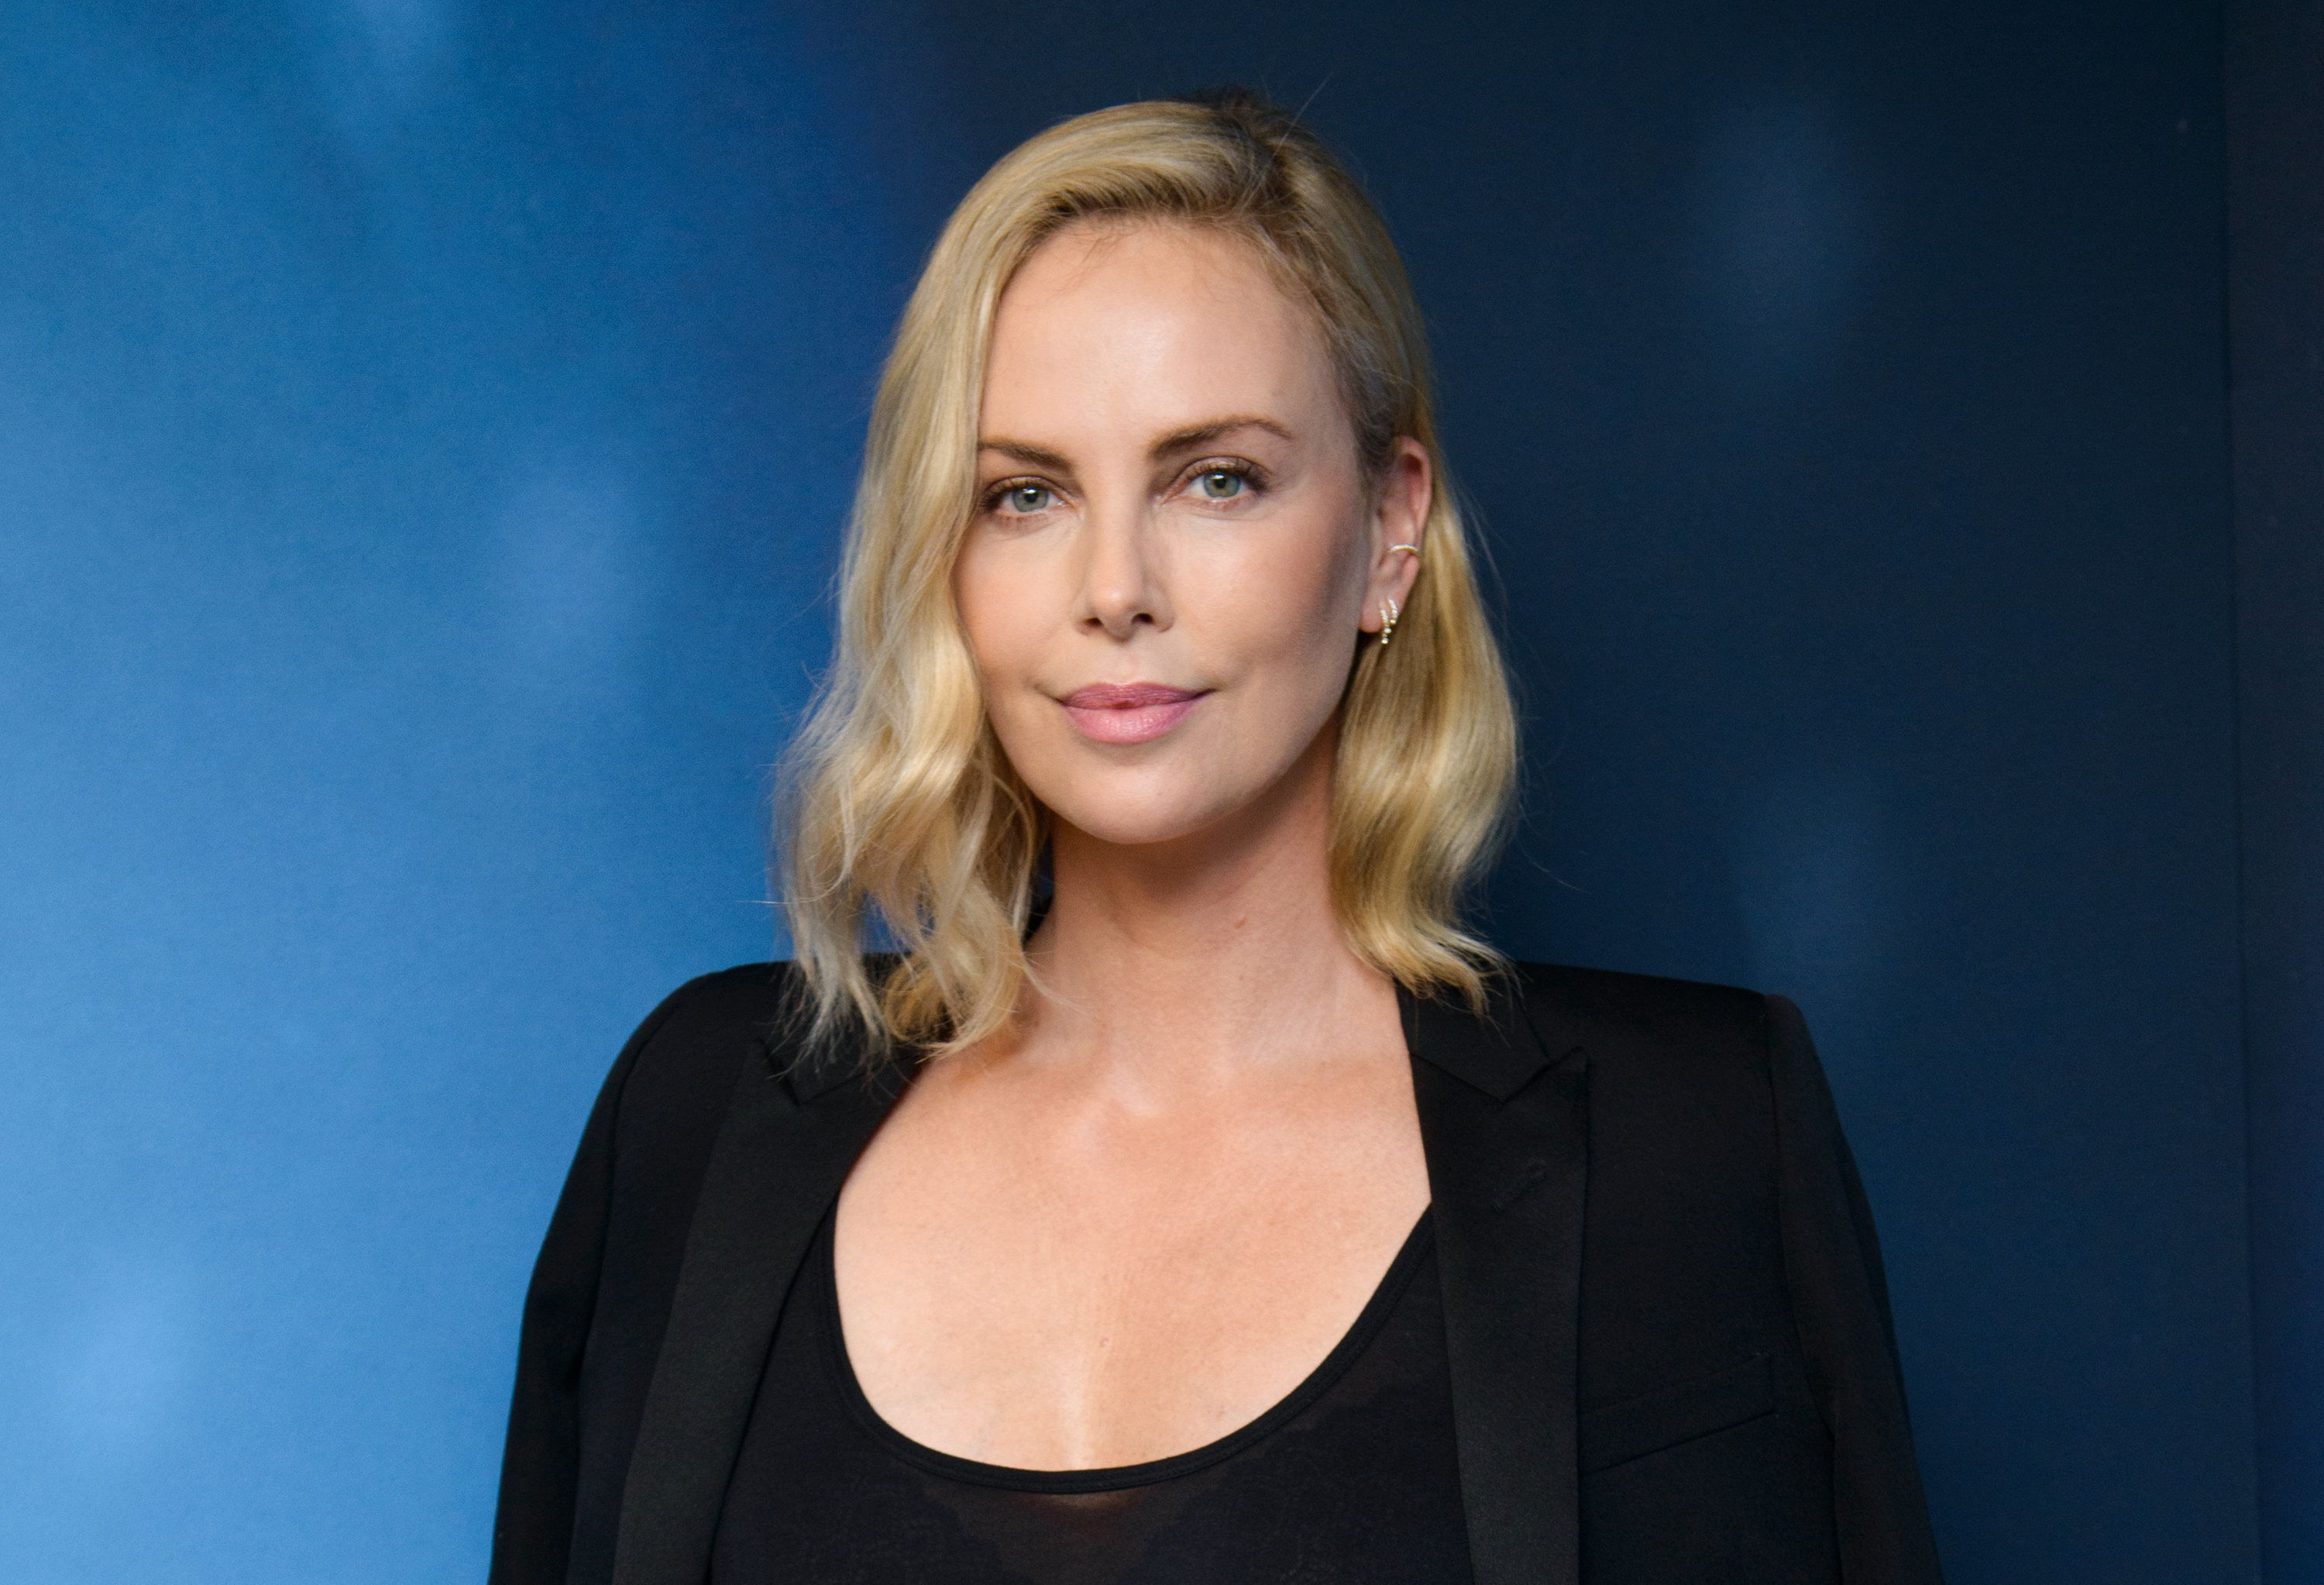 Charlize Theron Gets Real About Motherhood: 'Sometimes I Lose My